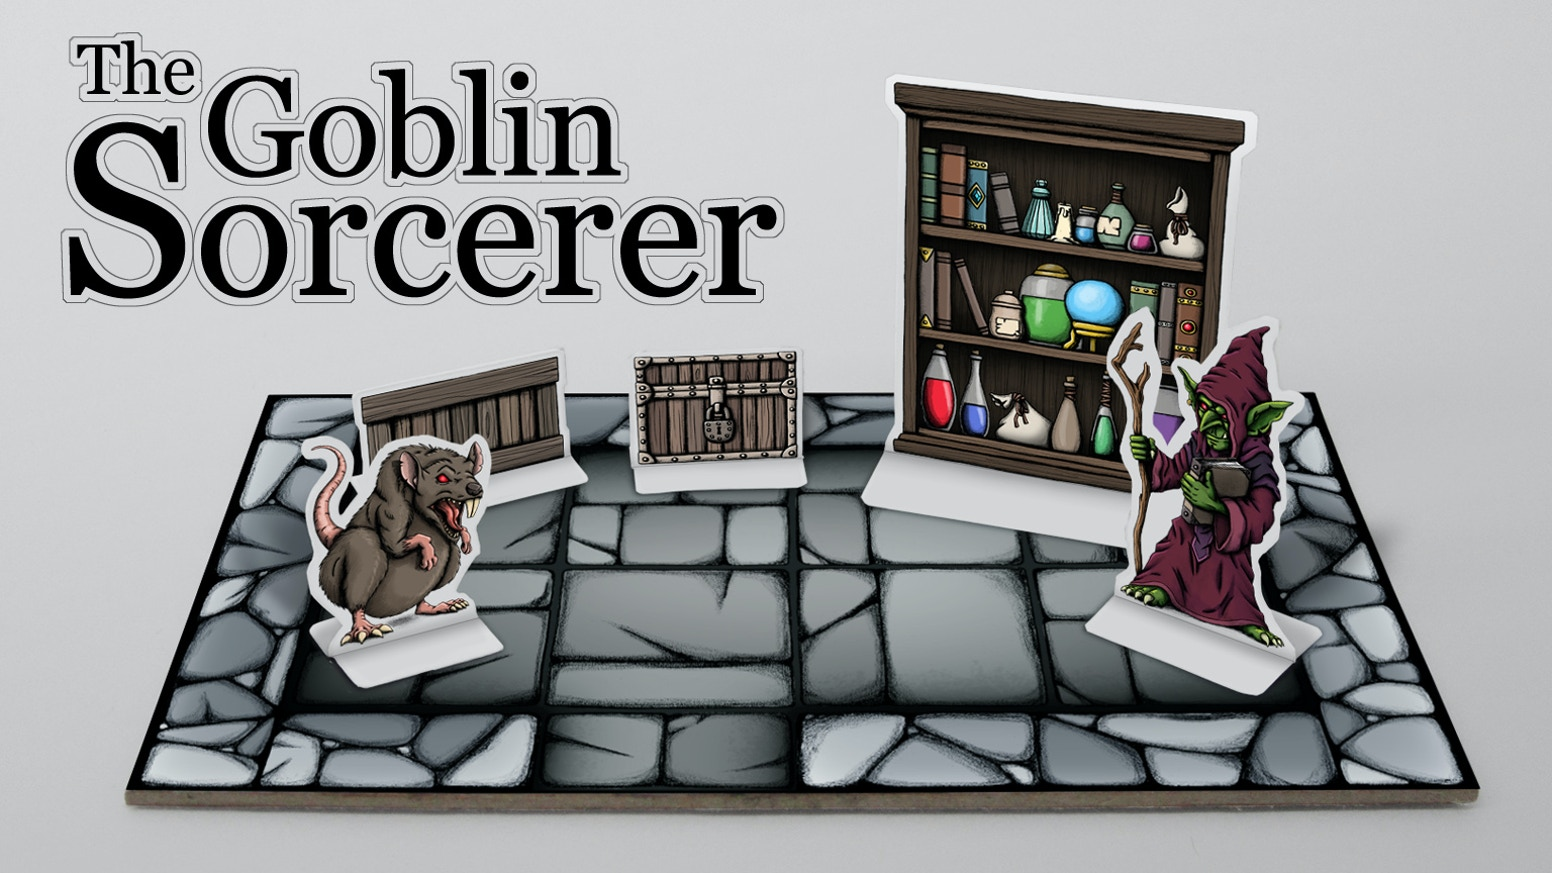 Paper Model and Miniature Diorama for Tabletop Role-Playing Games.